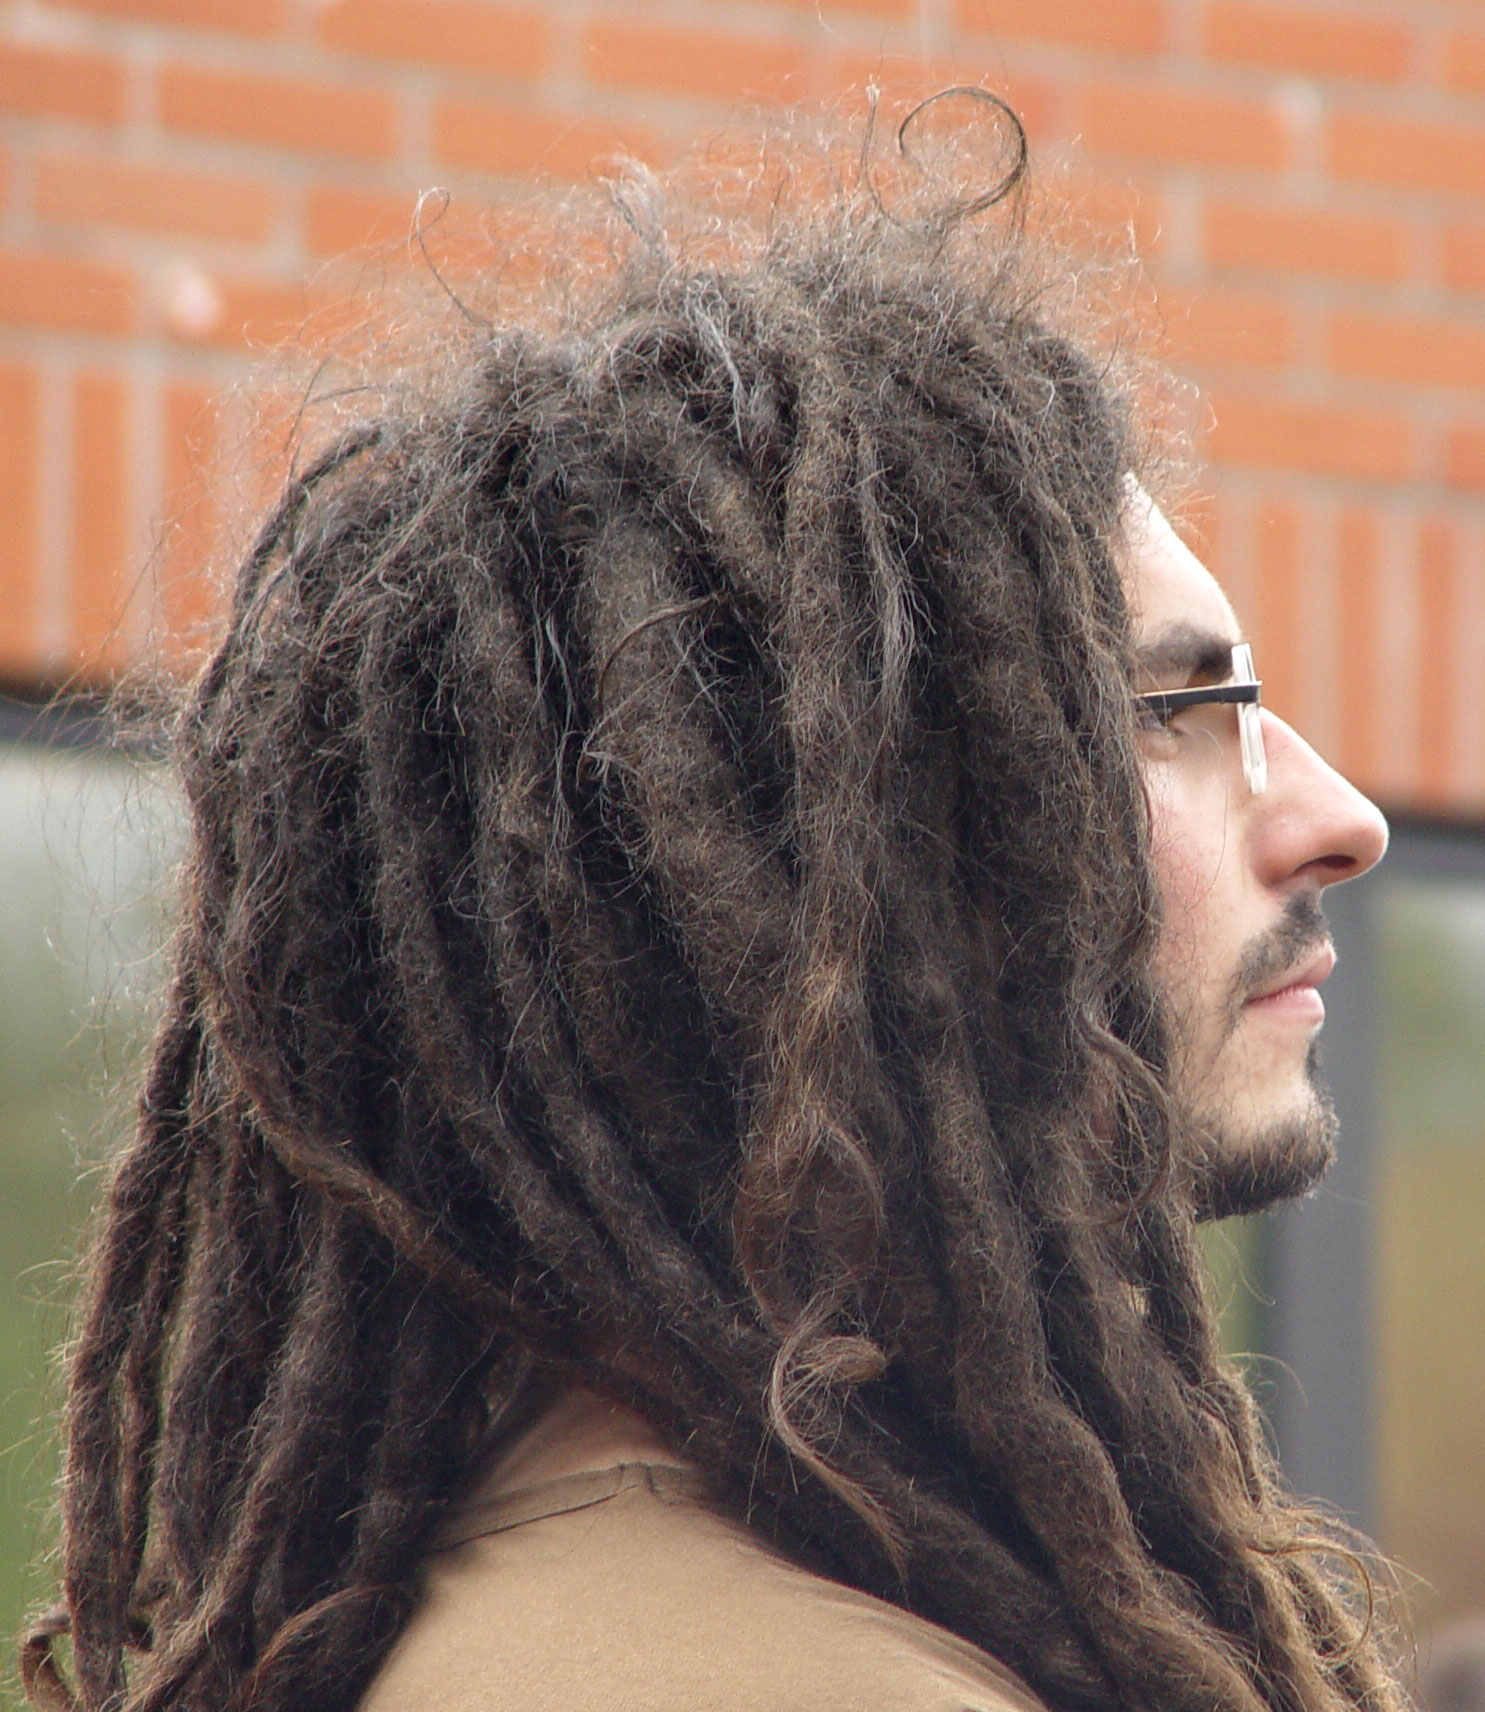 File:Man with dreadlocks.jpg - Wikimedia Commons